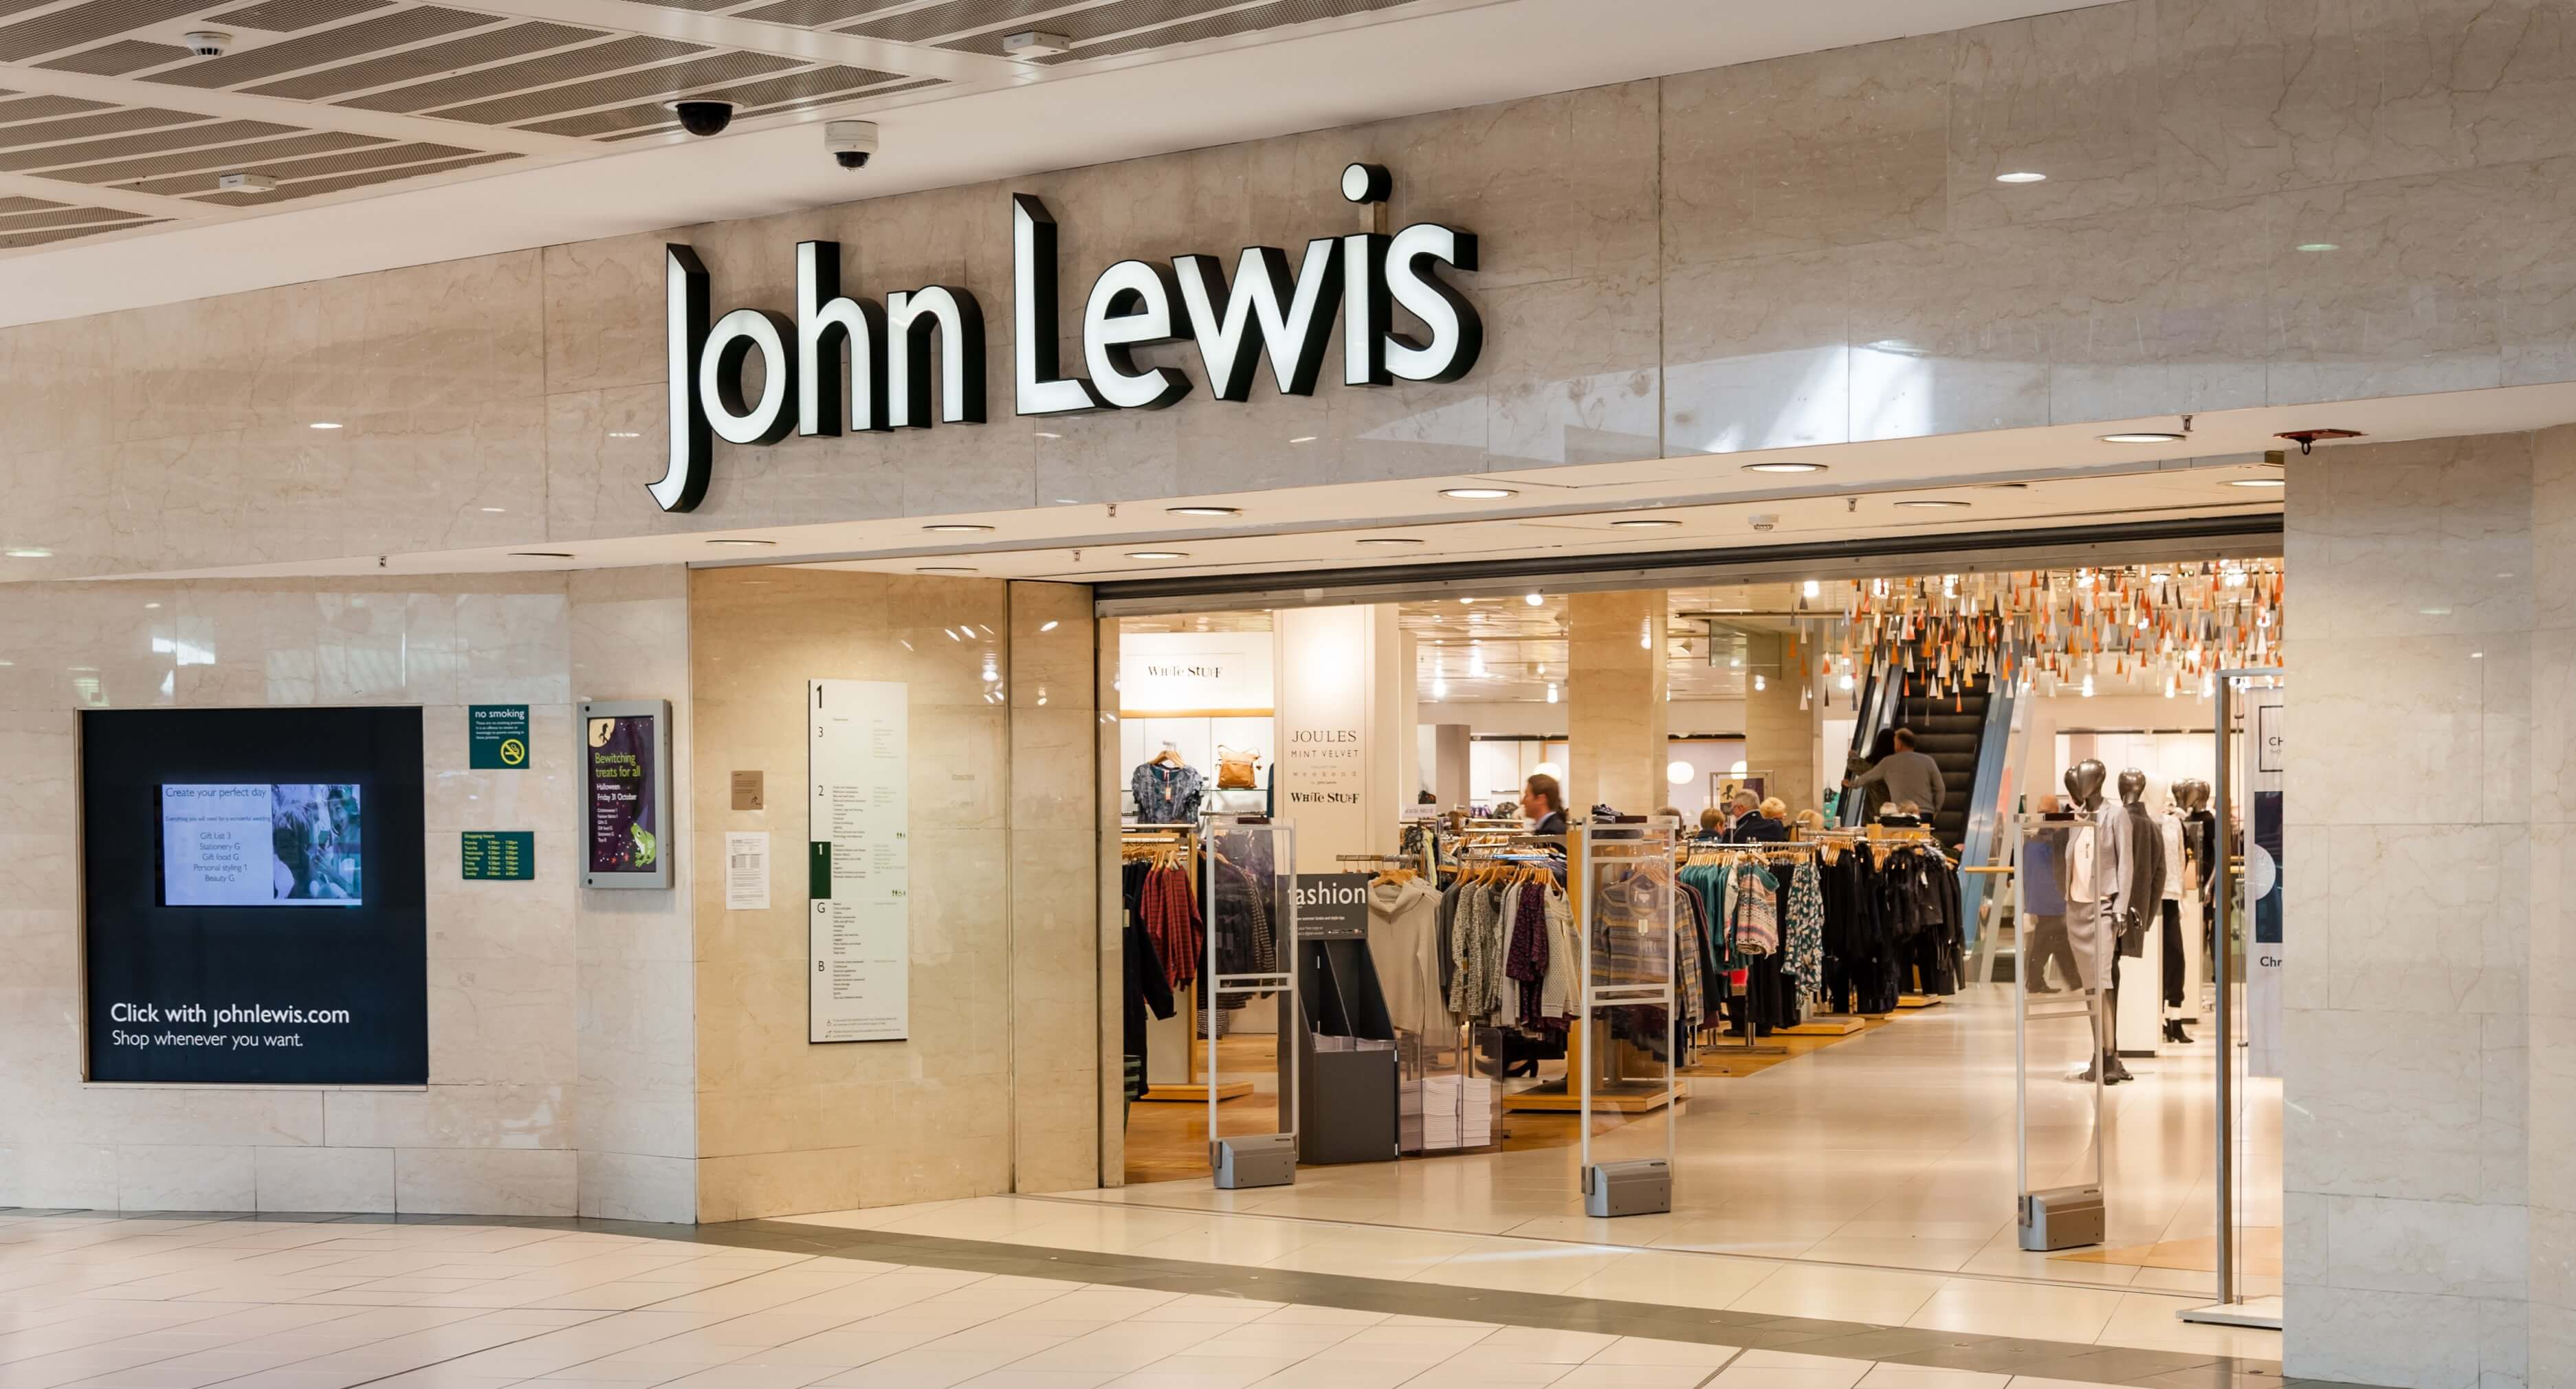 What the John Lewis re-brand tells us about the future of retail (hint: it's all about the experience)